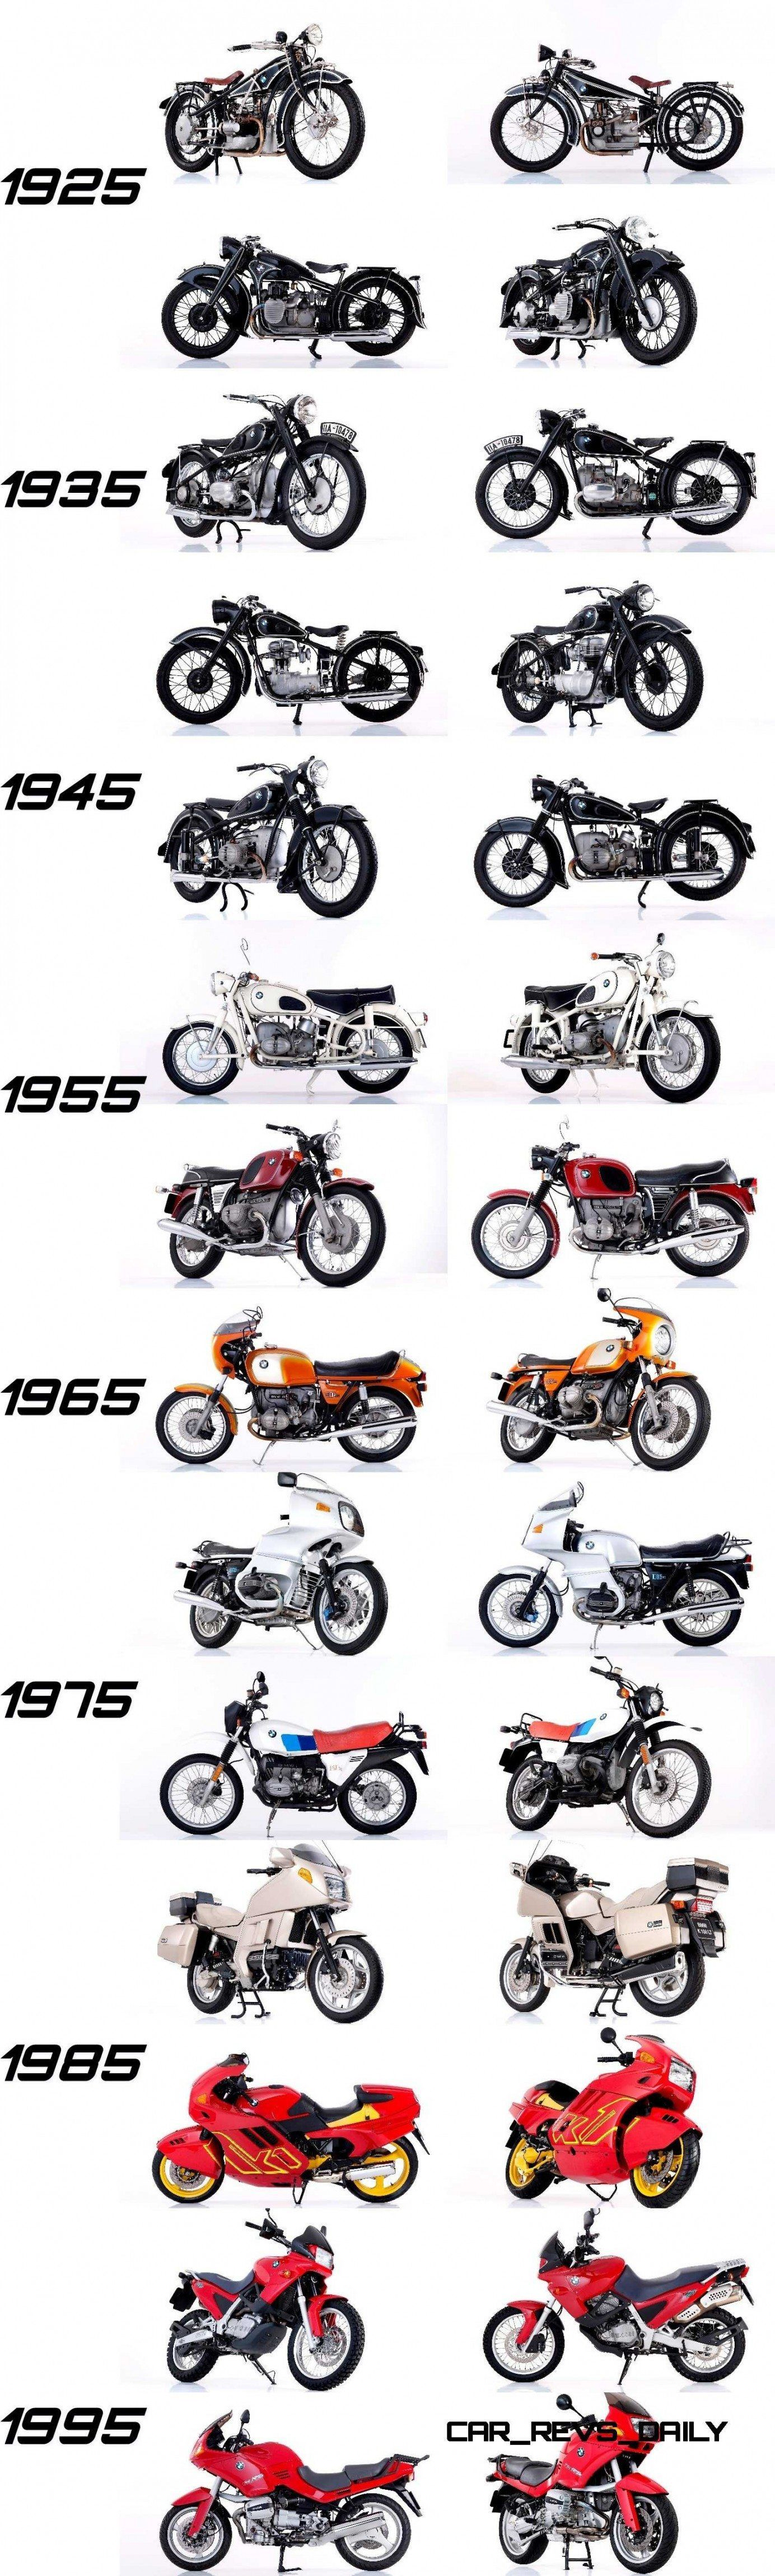 Bmw Motorcycles Evolution Family Pinterest Motorcycle 1985 K100 Wiring Diagram Revolucin Since 1923 Animated Timeline Via 20 Iconic Bikes Vintage